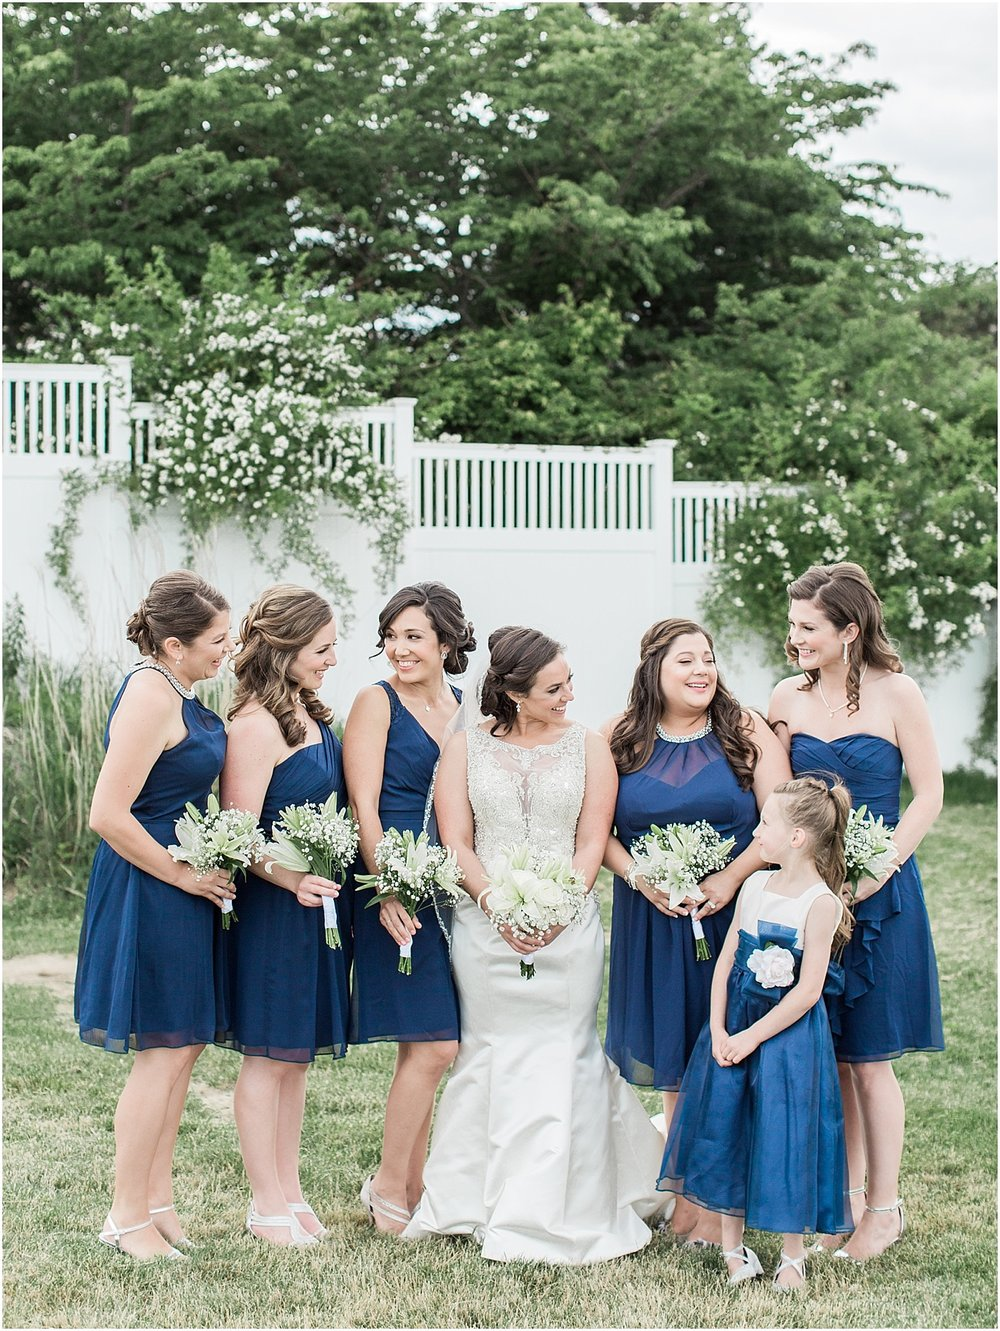 nicole_stephen_cape_club_nicky_falmouth_cod_boston_wedding_photographer_meredith_jane_photography_photo_0182.jpg